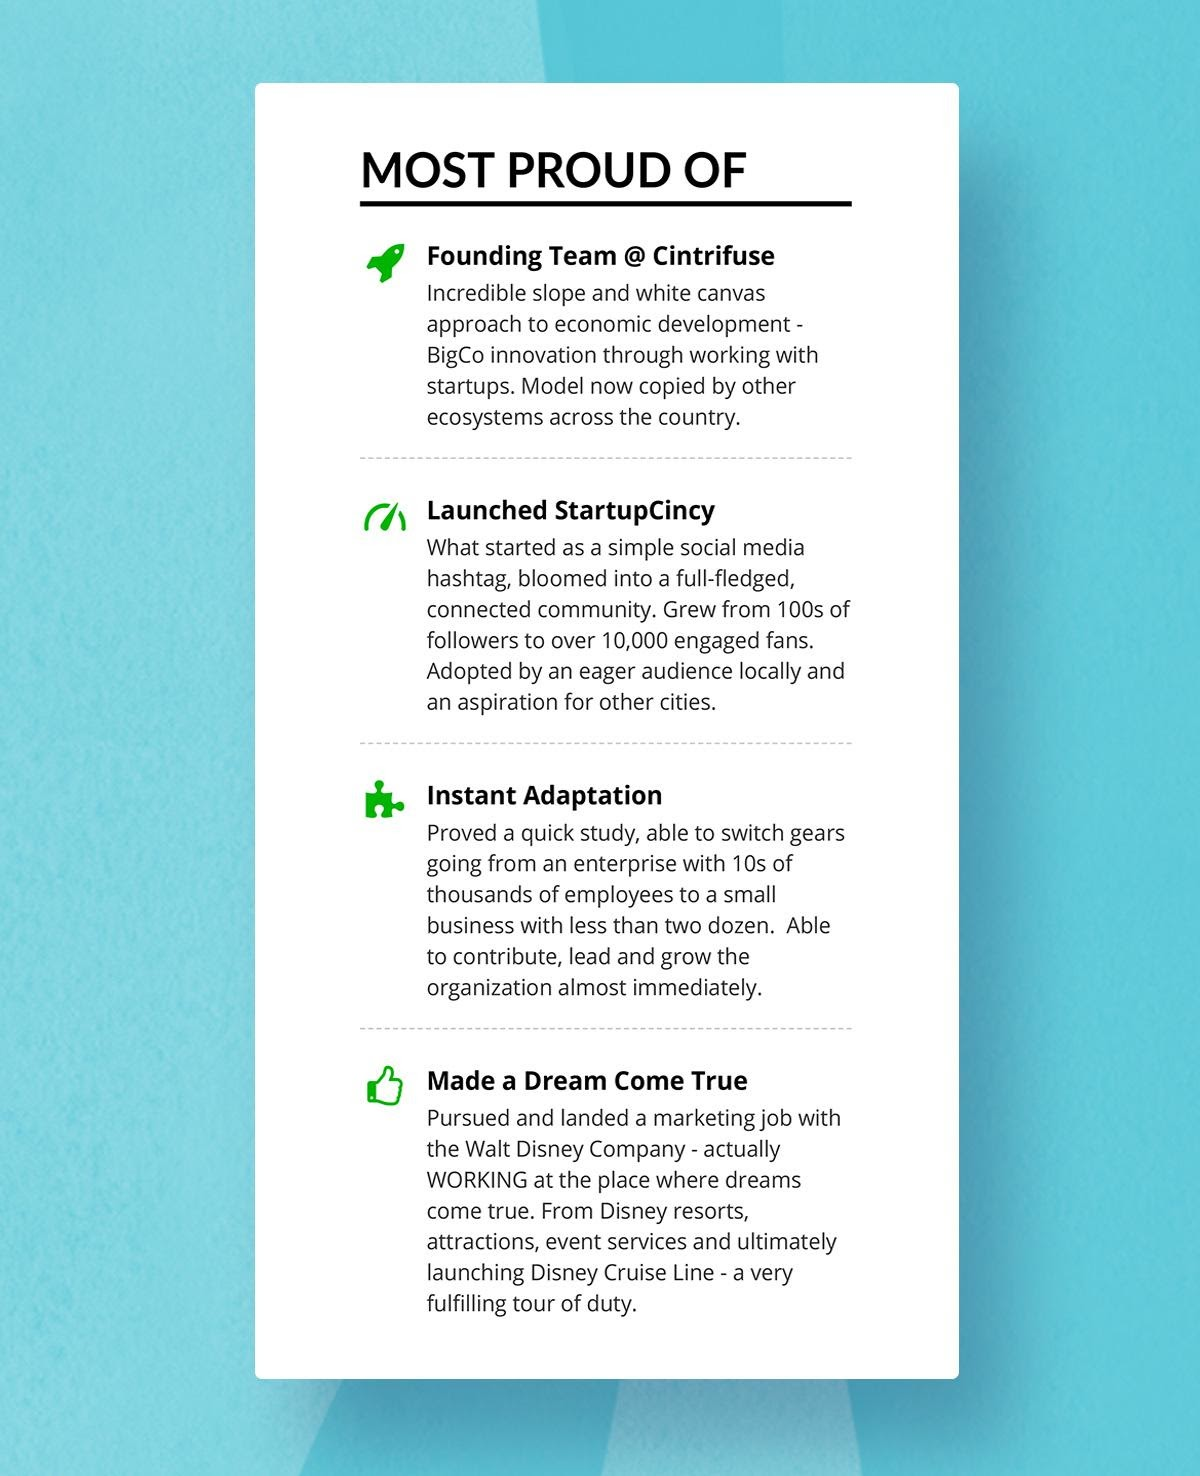 resume headings to stand out in with examples creative image7 executive summary advice Resume Creative Resume Headings